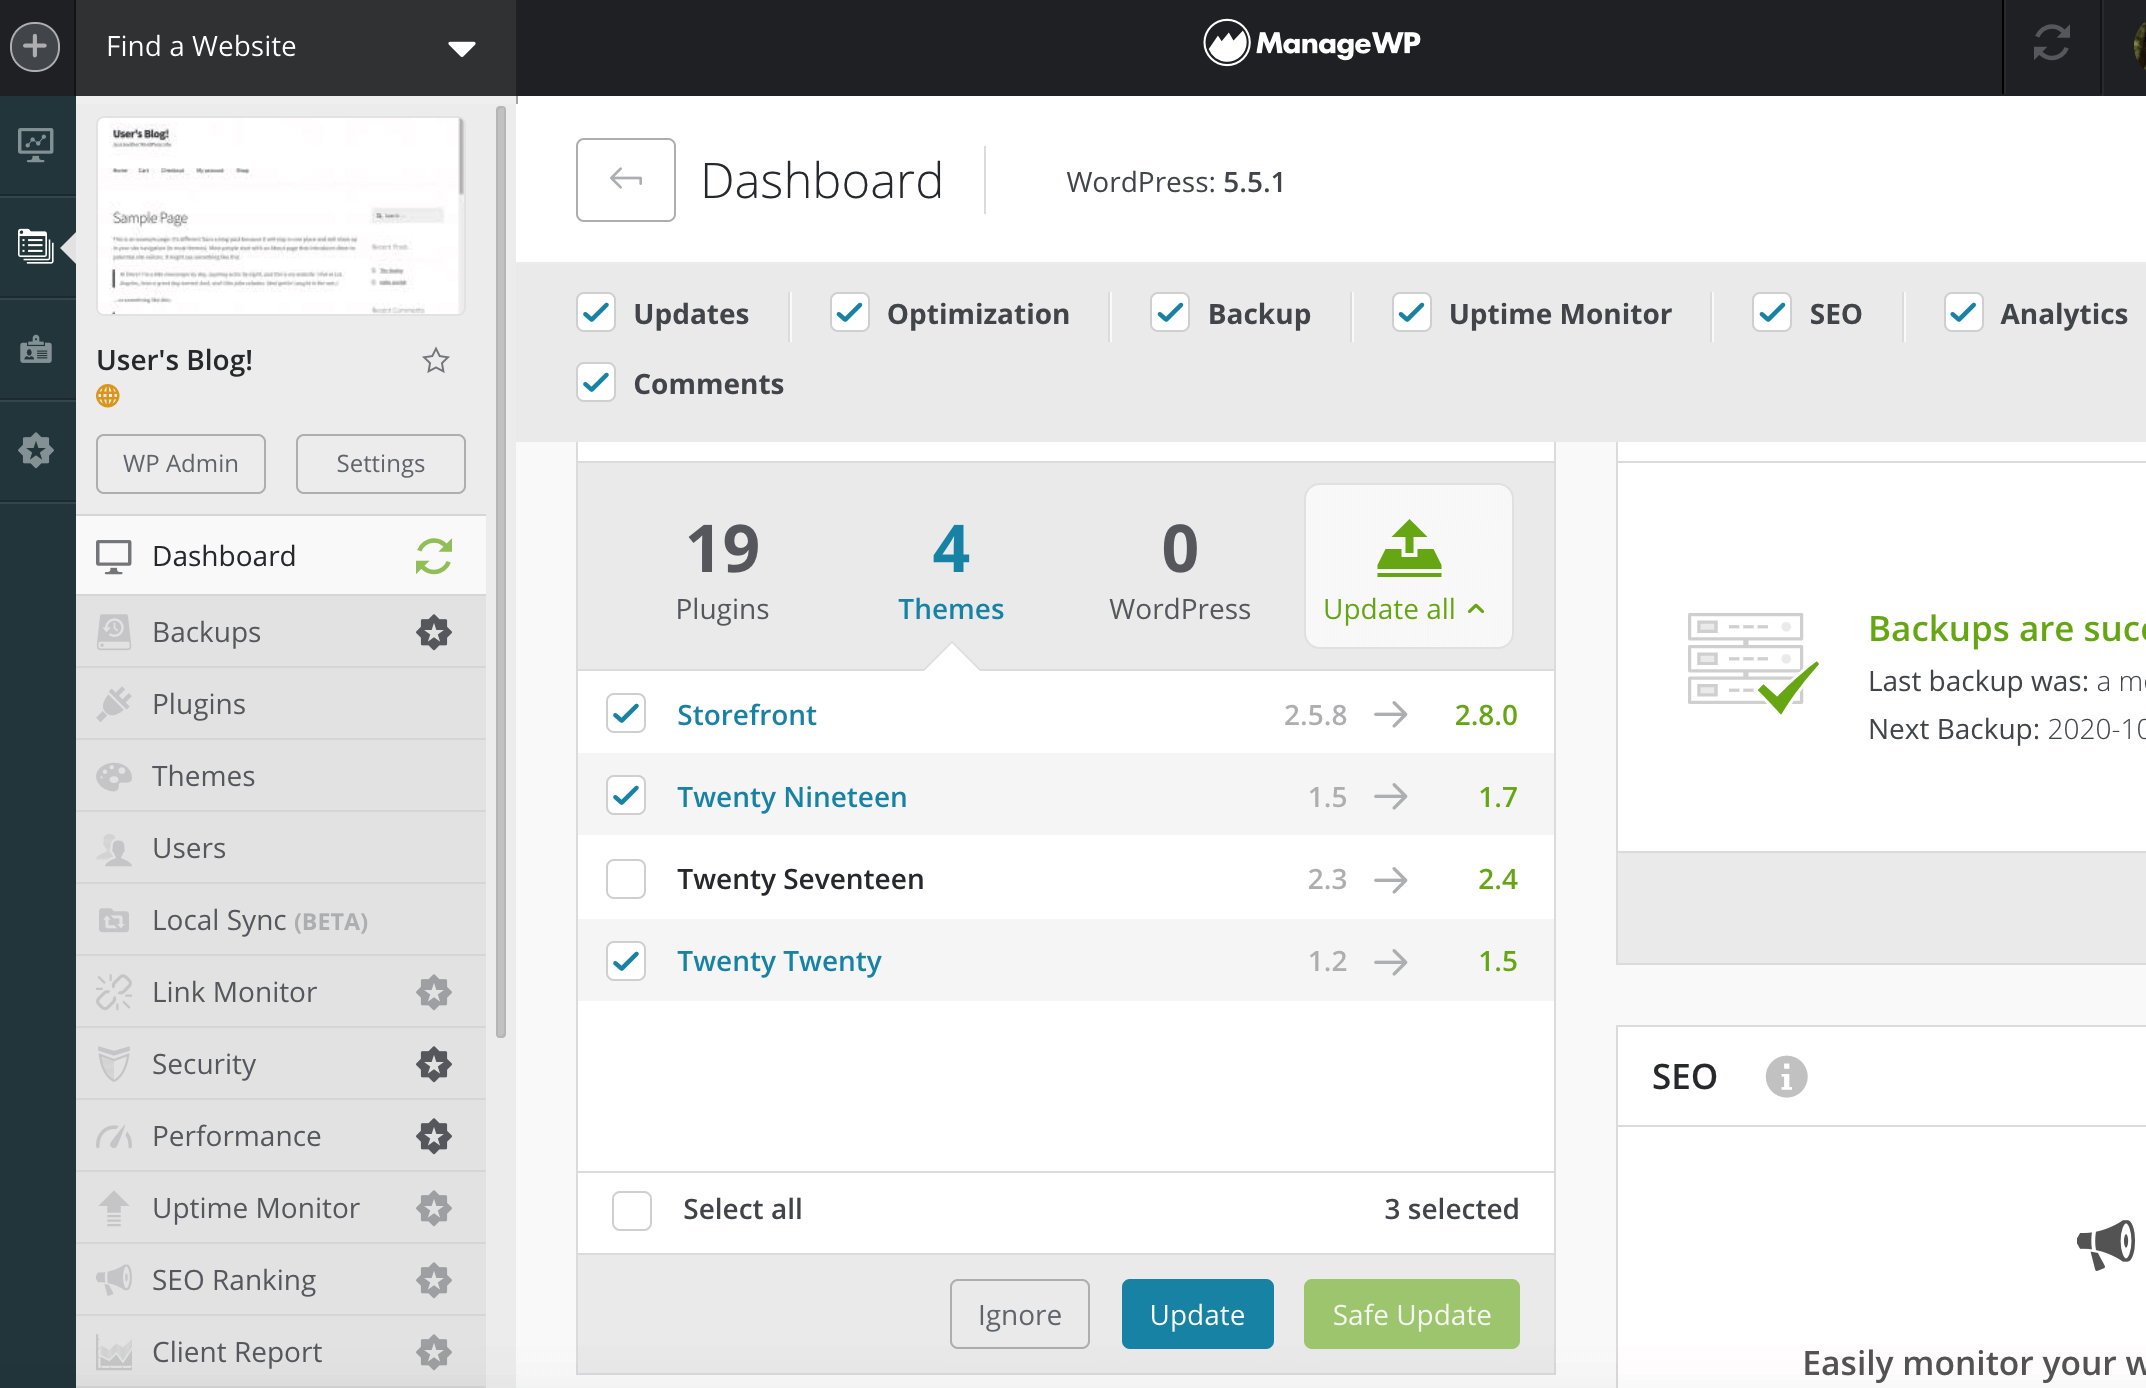 Scheduling theme updates in the ManageWP dashboard.